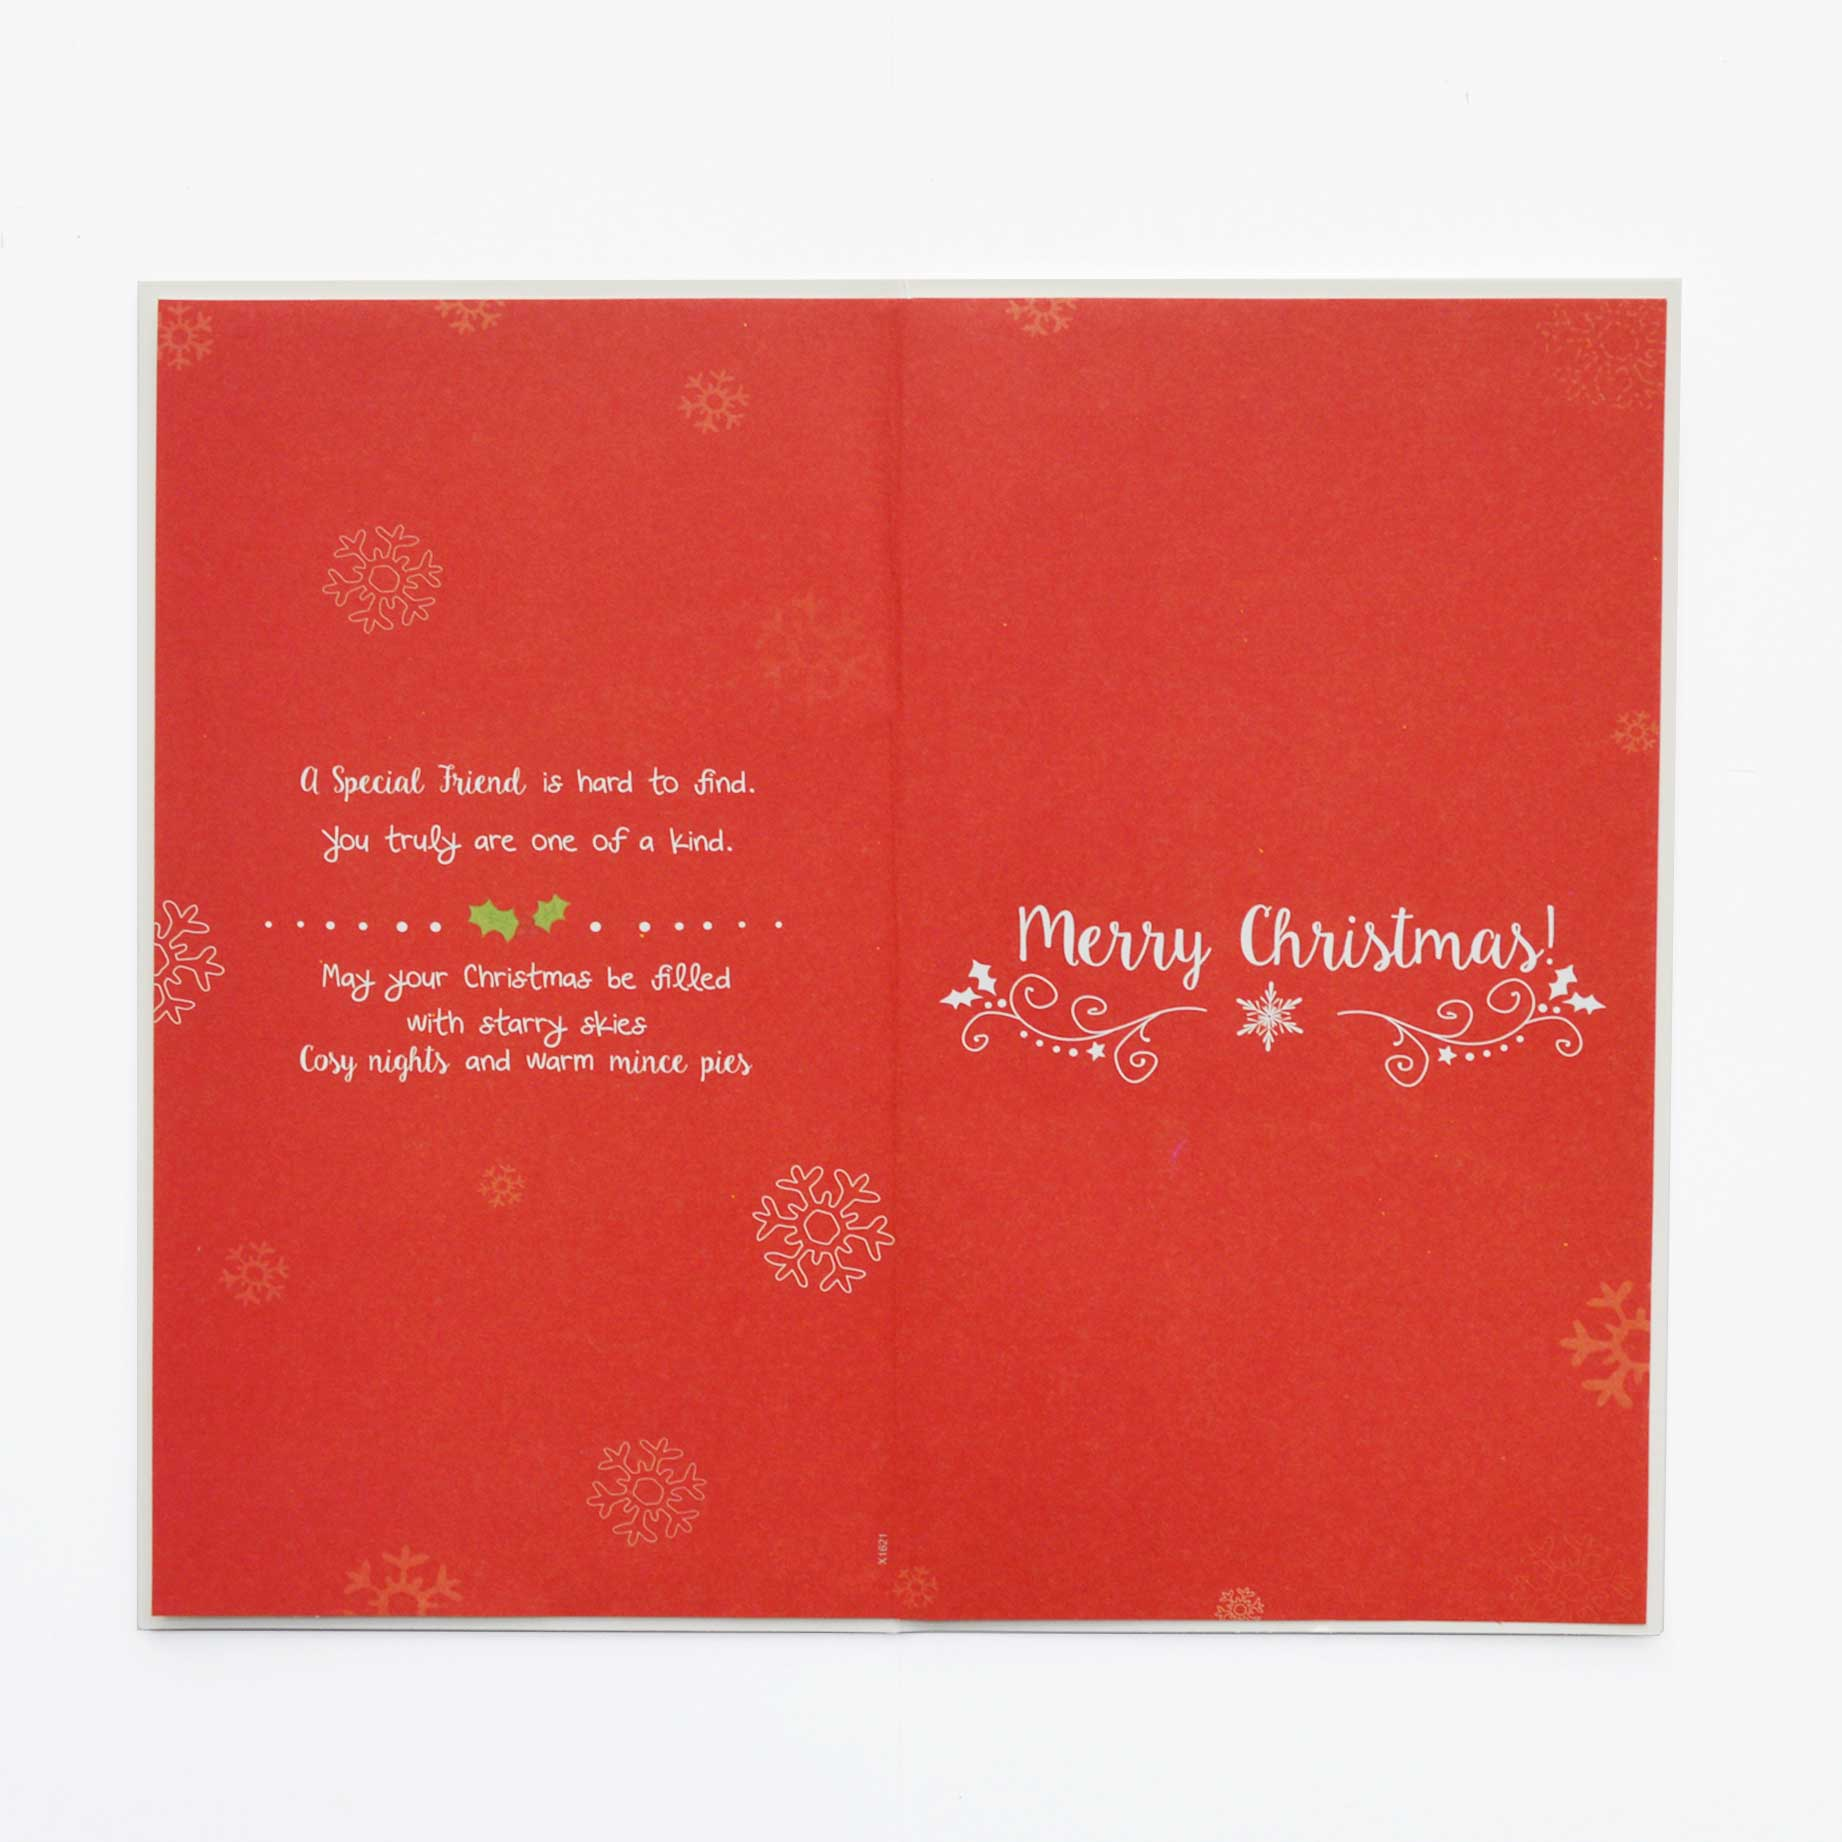 Christmas Card A Special Friend Garlanna Greeting Cards